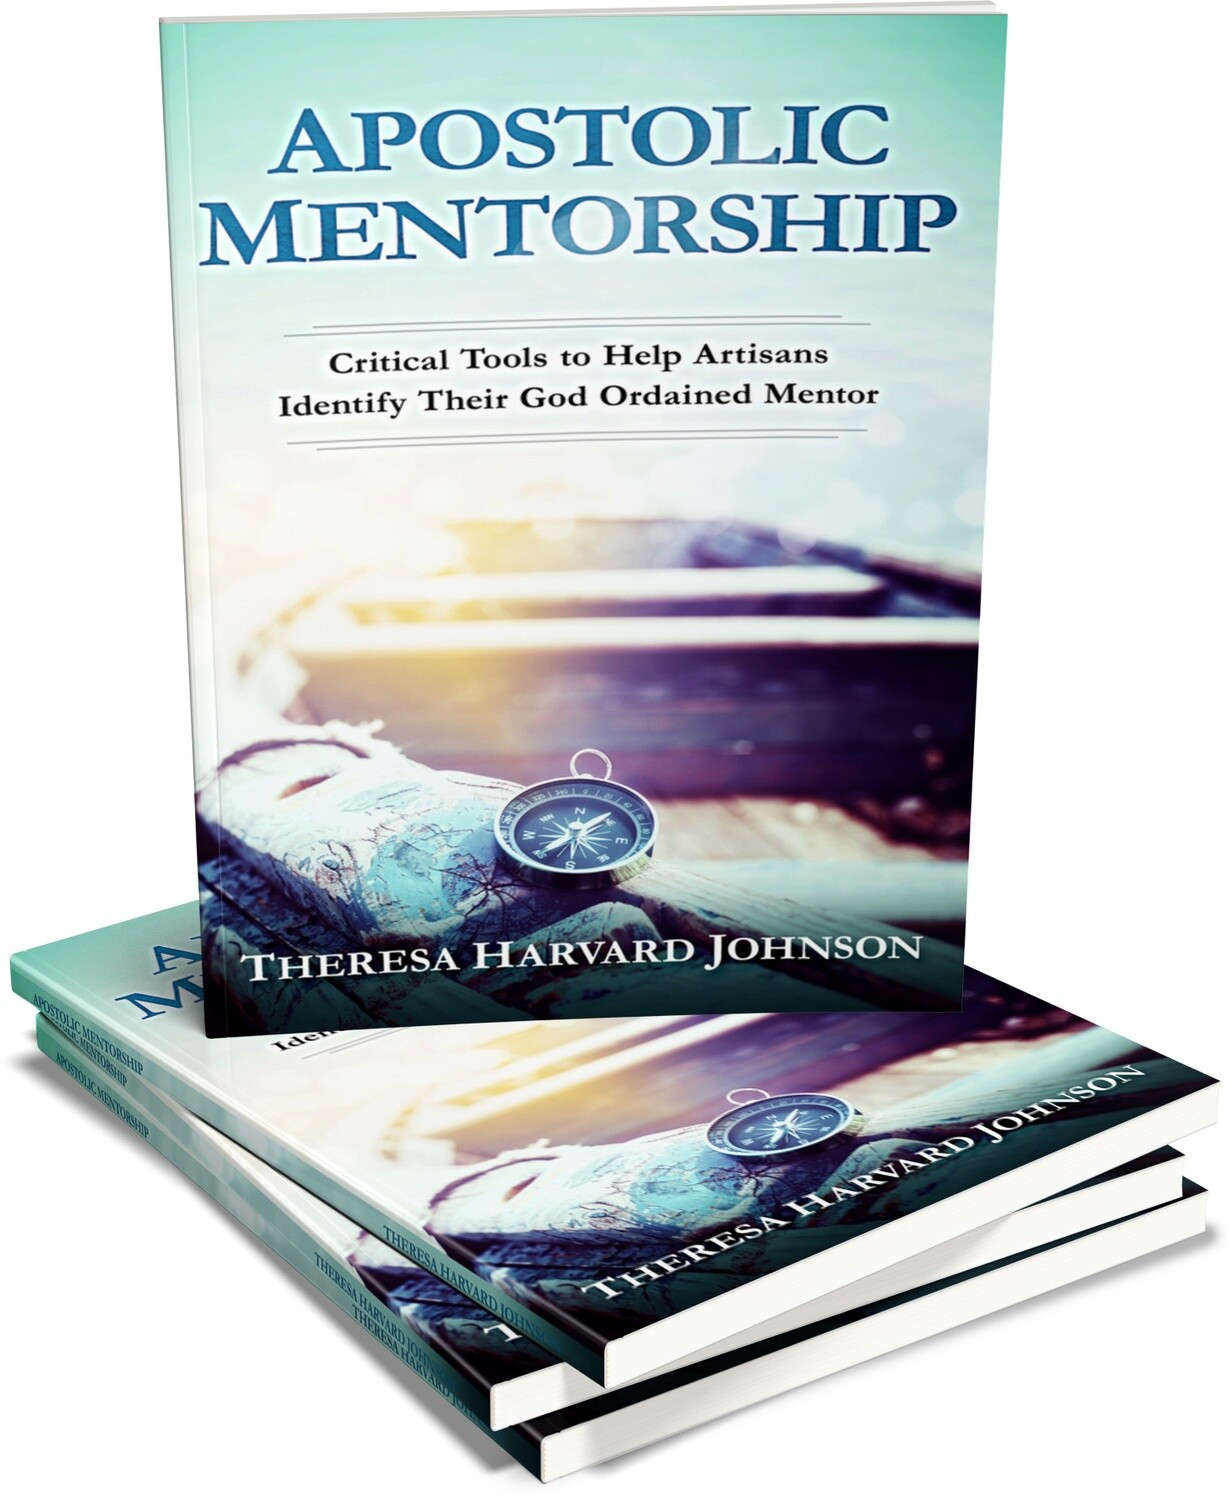 Apostolic Mentorship: Critical Tools to Help Artisans Identify Their God Ordained Mentor